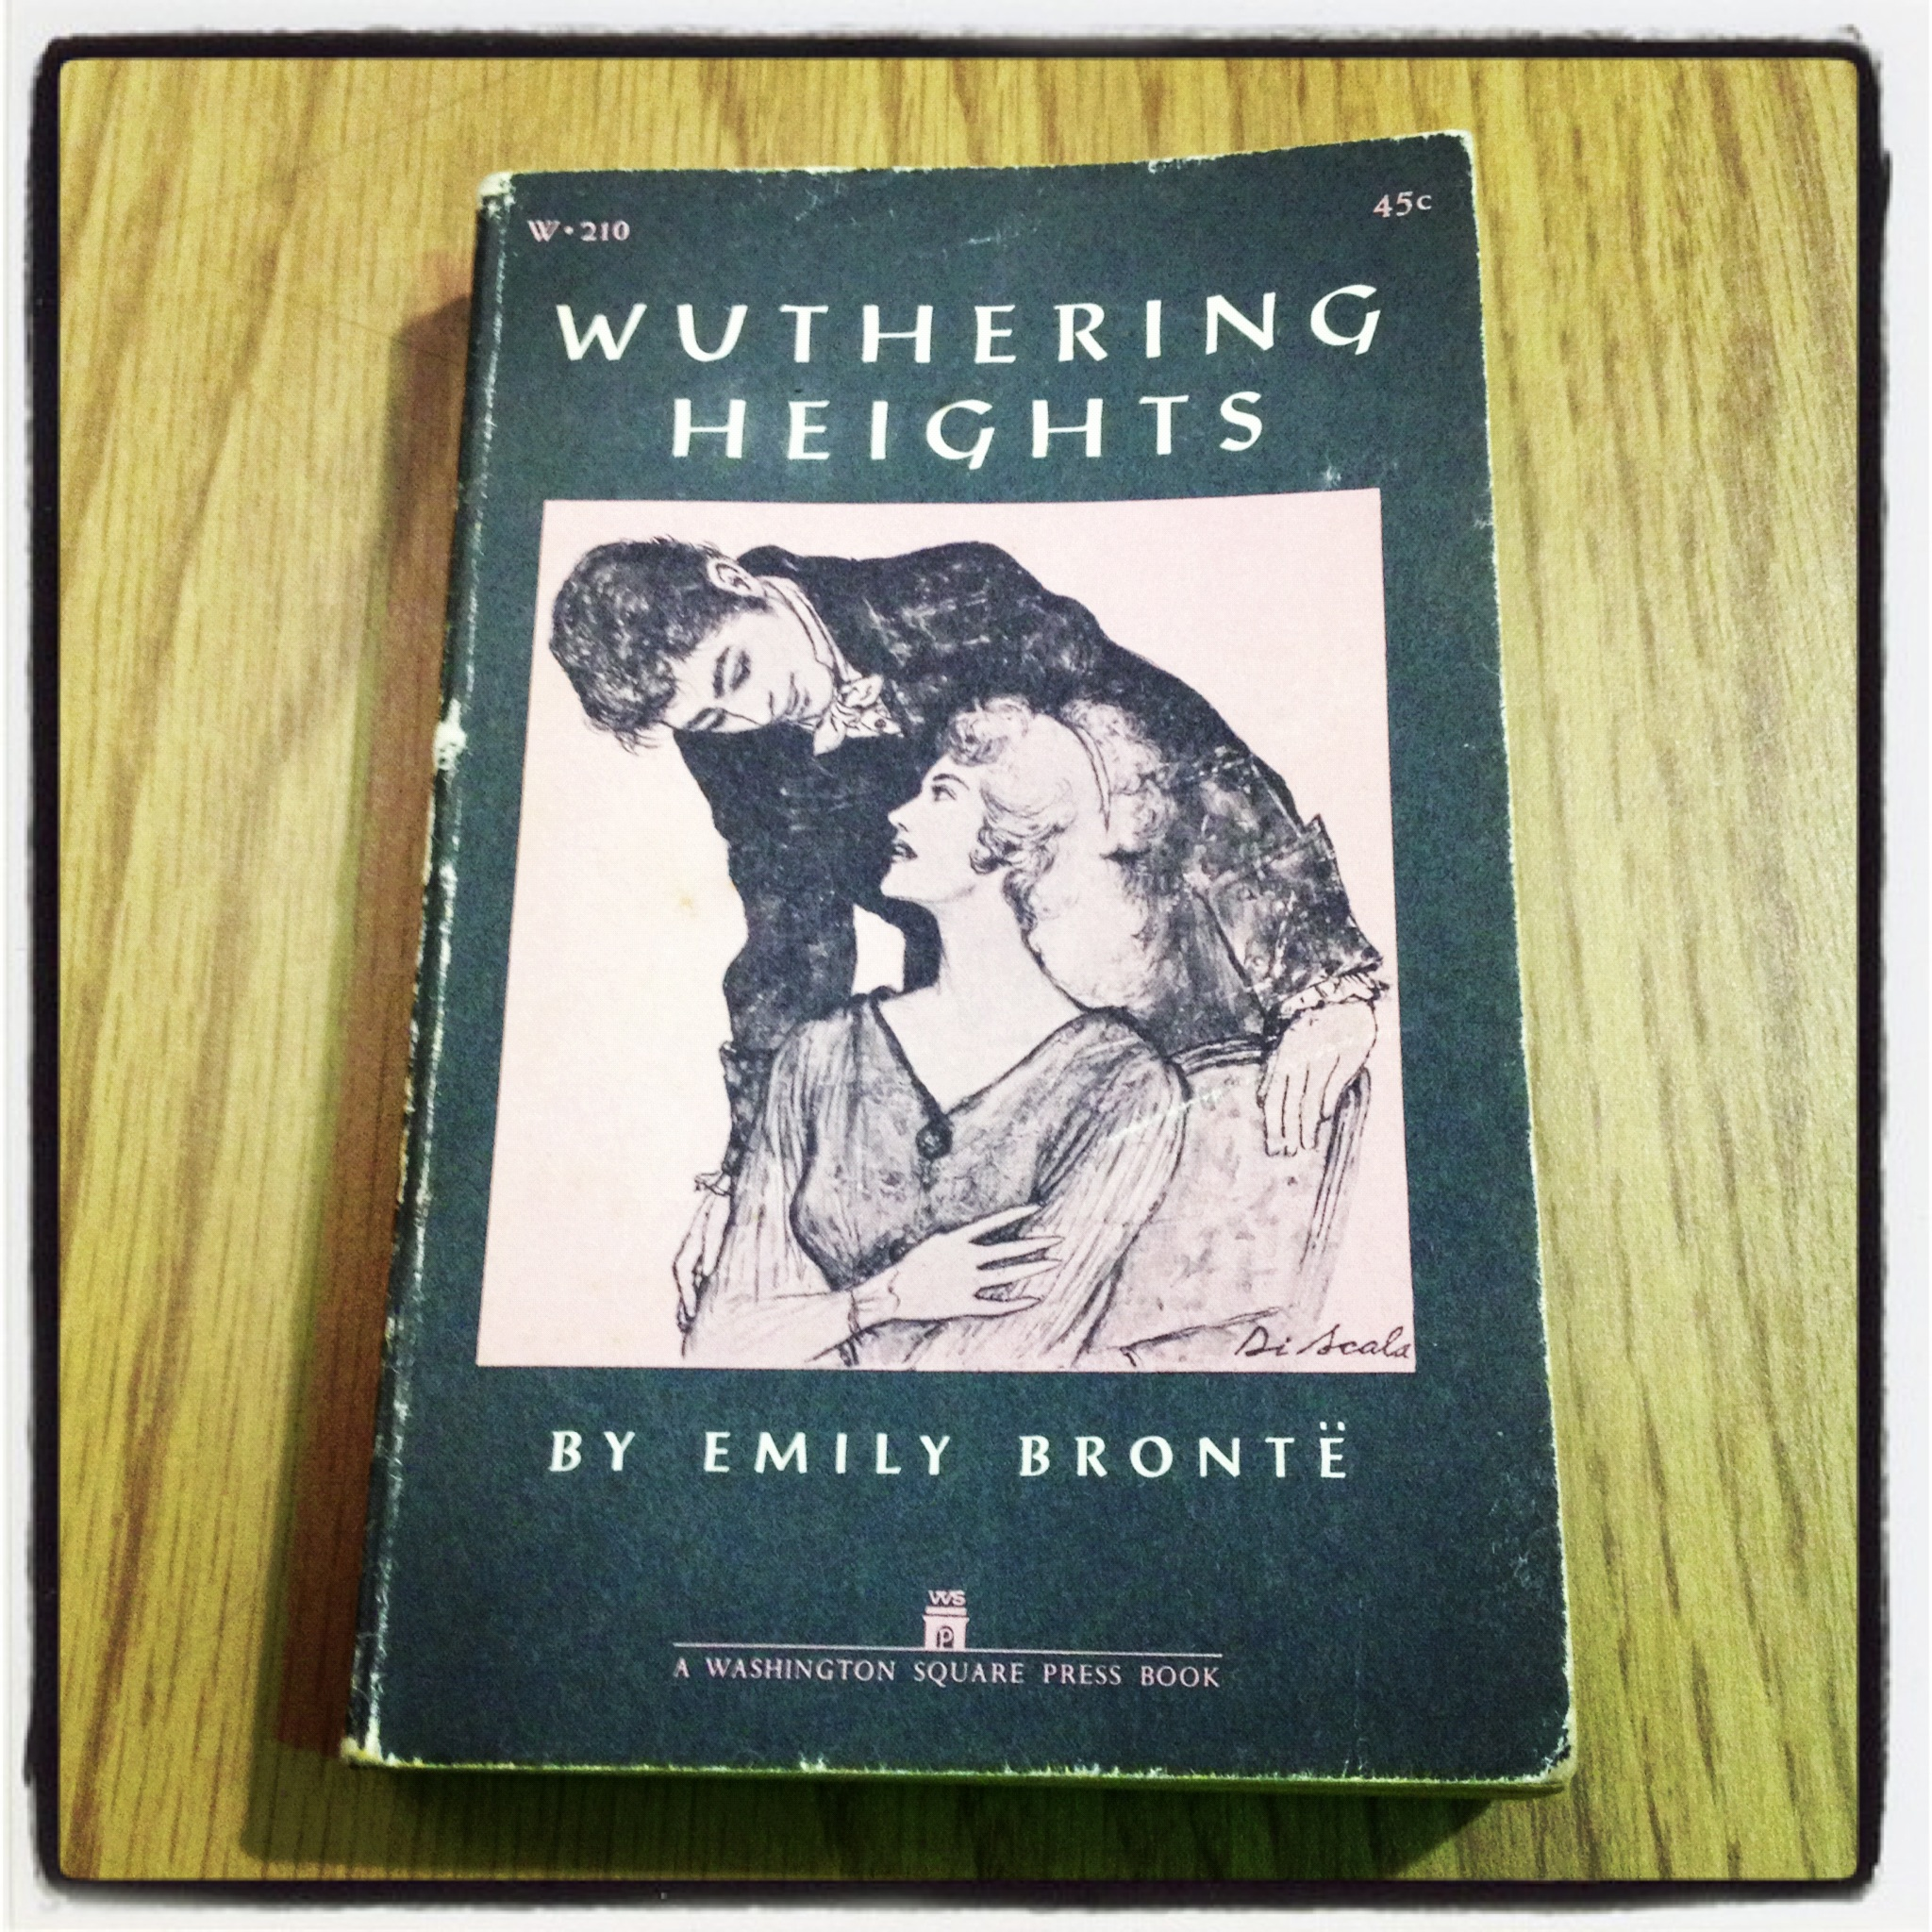 a review of the book wuthering heights by emily bronte Wuthering heights & poems has 95 ratings and 14 reviews valerie said: was as good as i remember it, and always amazed by the awesomeness that is emily bronte a dark book the character and.